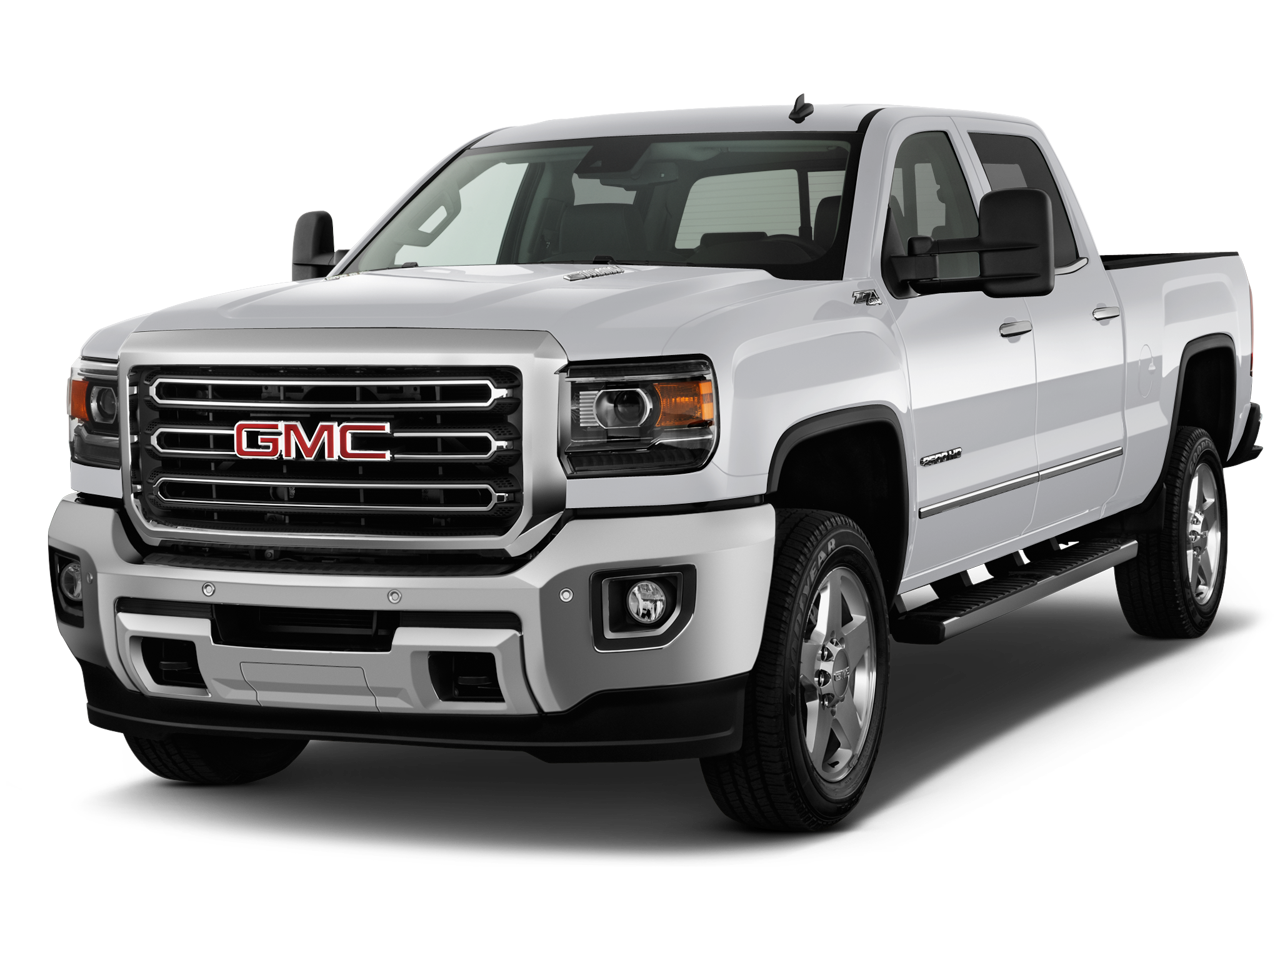 what colors do gmc offer the 2016 2500hd in 2016 html